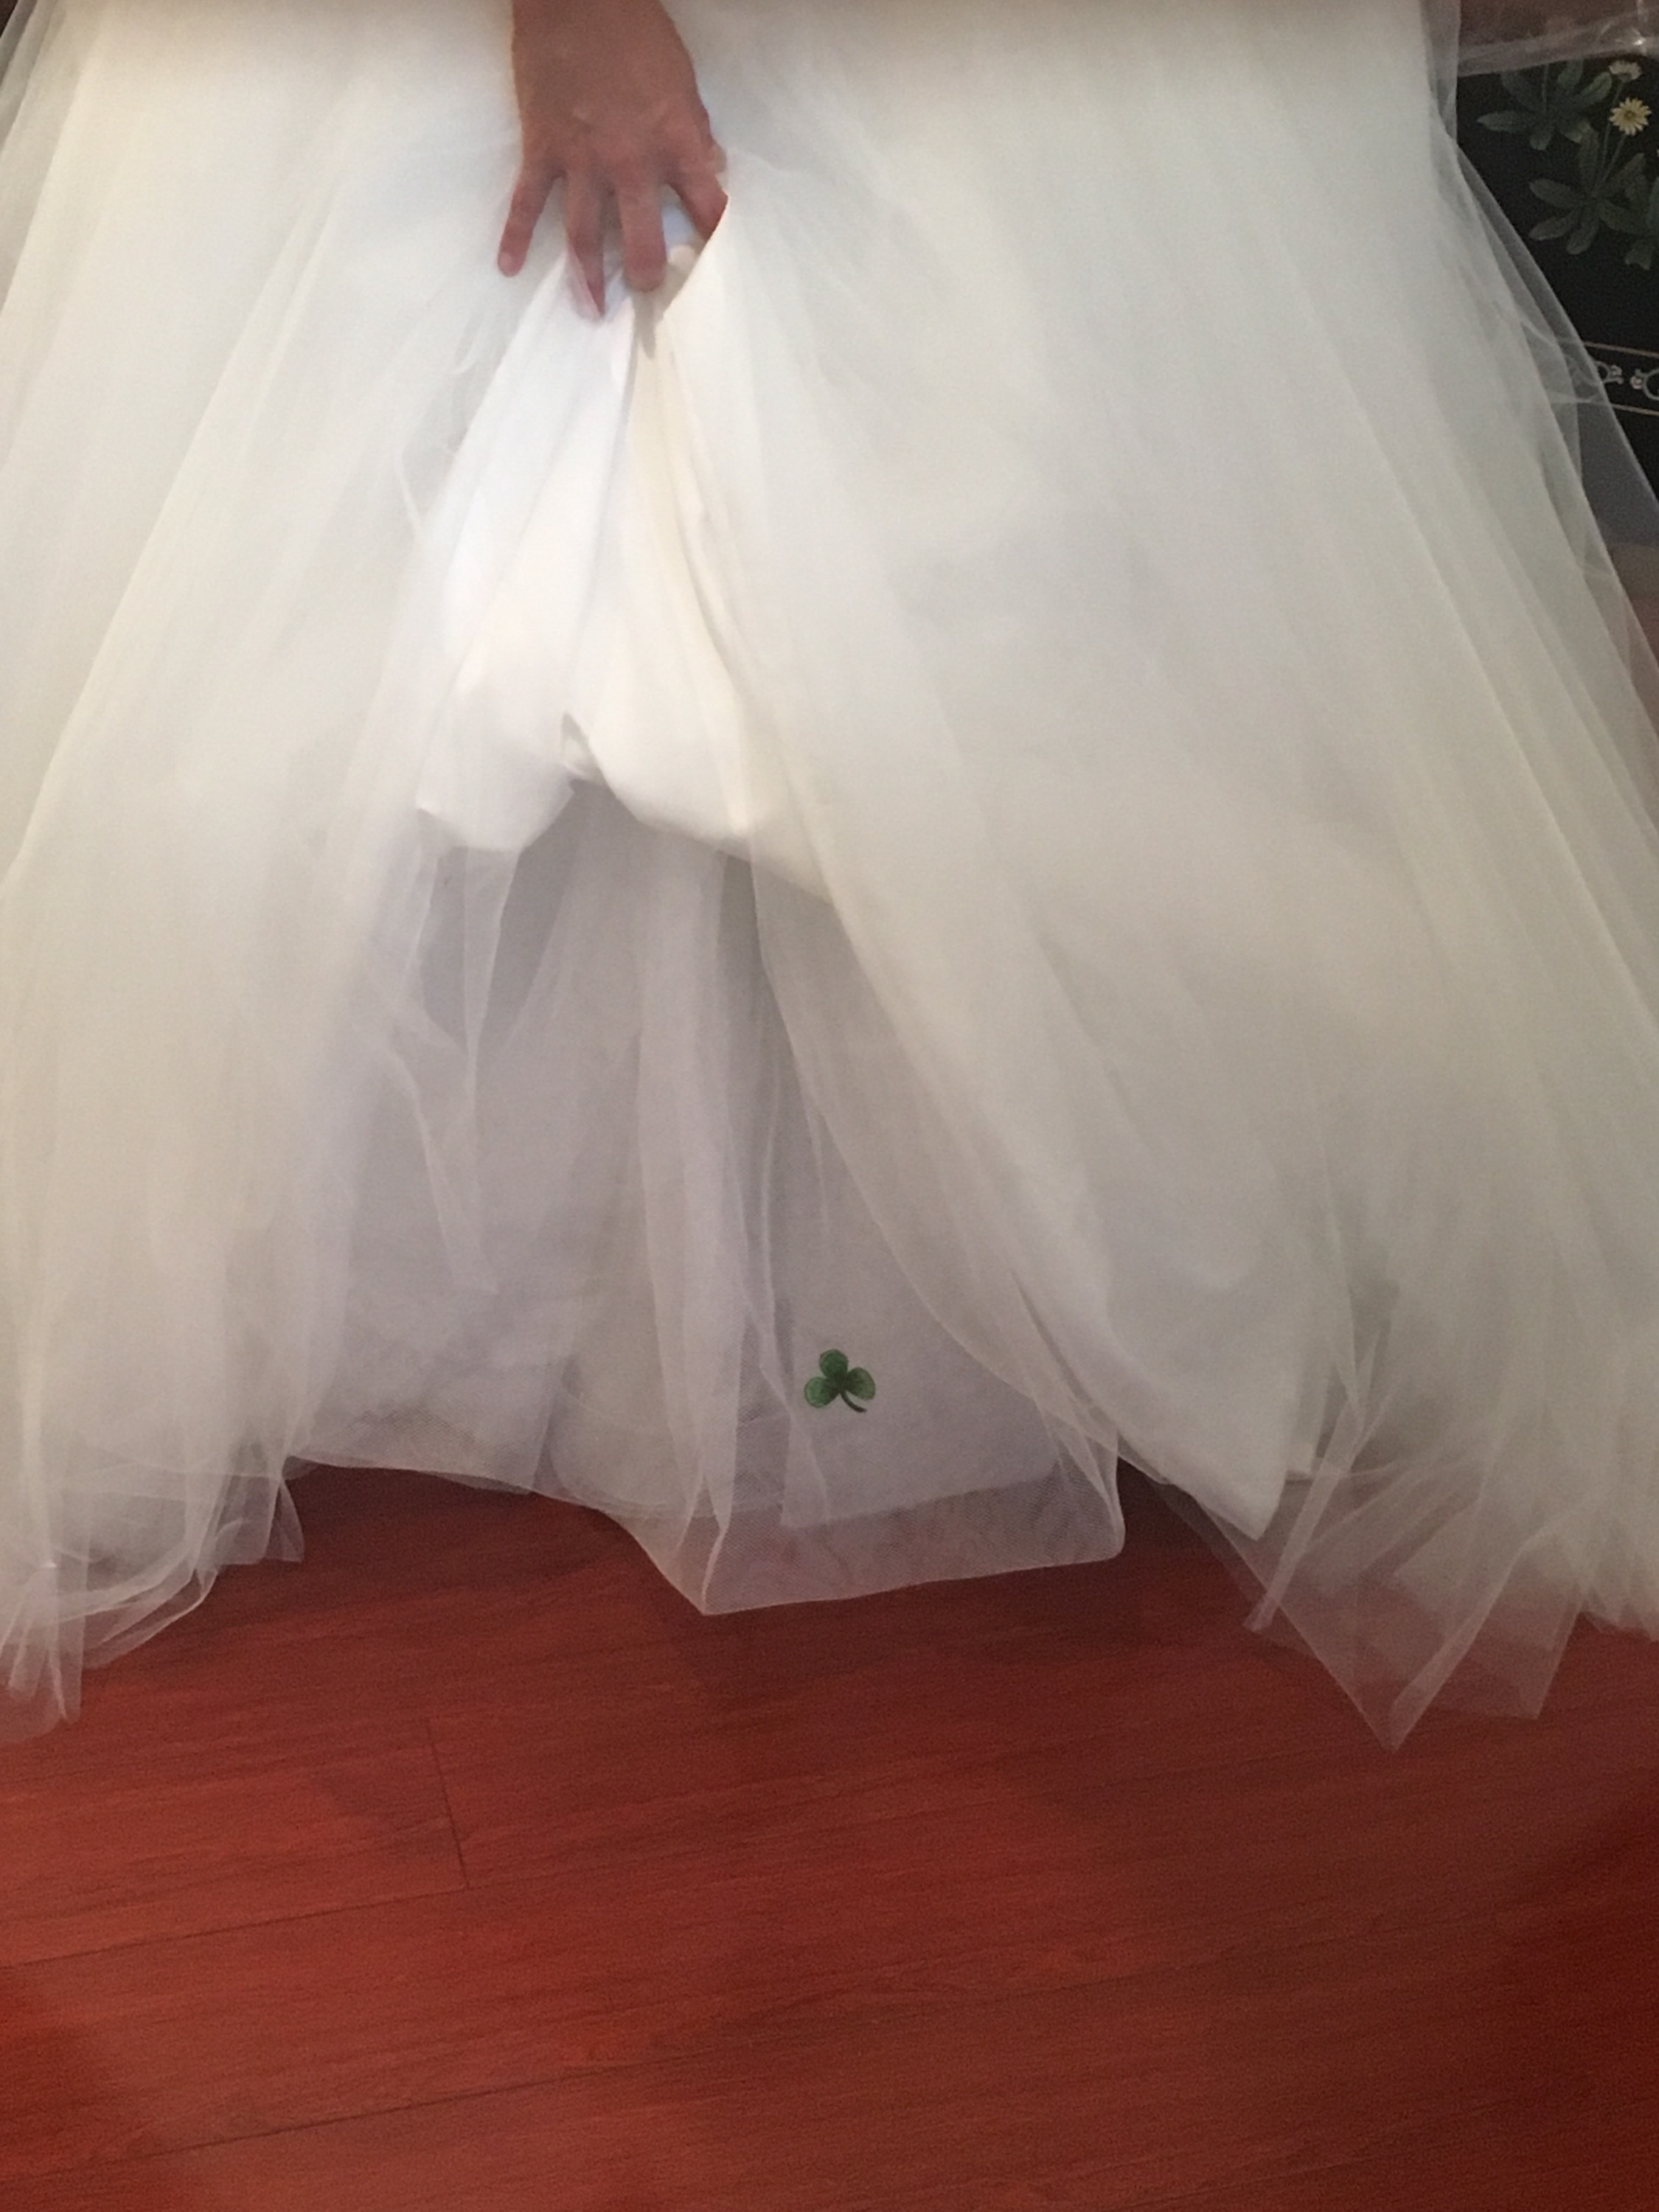 The bride wore a wee splash of green....sewn into her gown as a little nod to her Irish heritage.